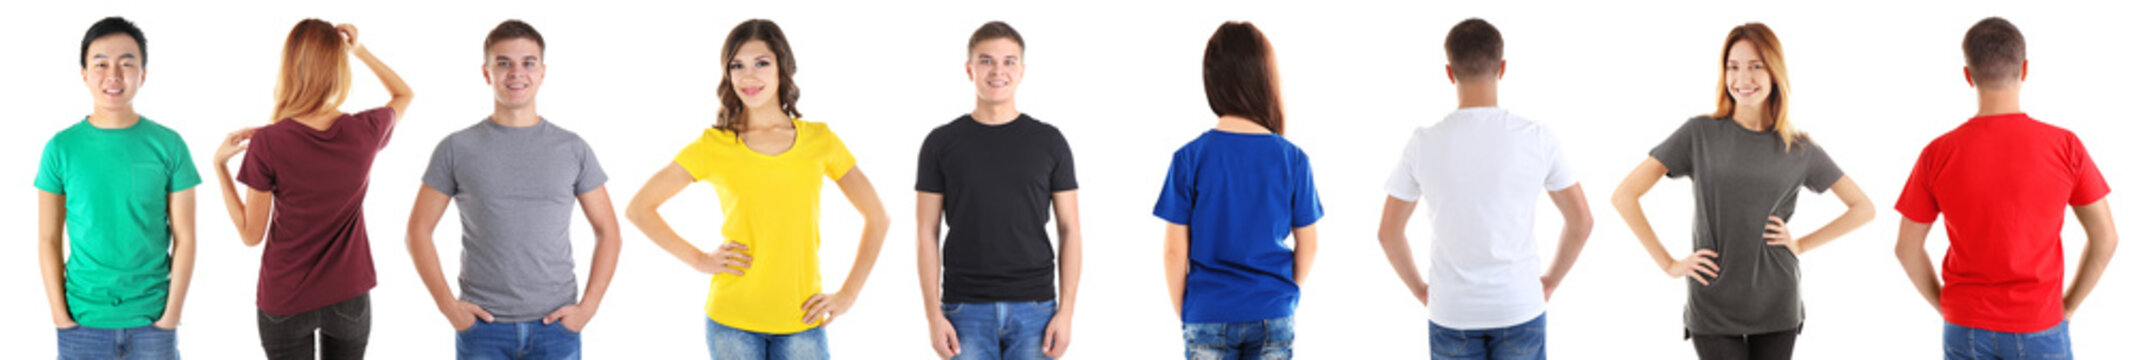 Different views of young people wearing t-shirts on white background